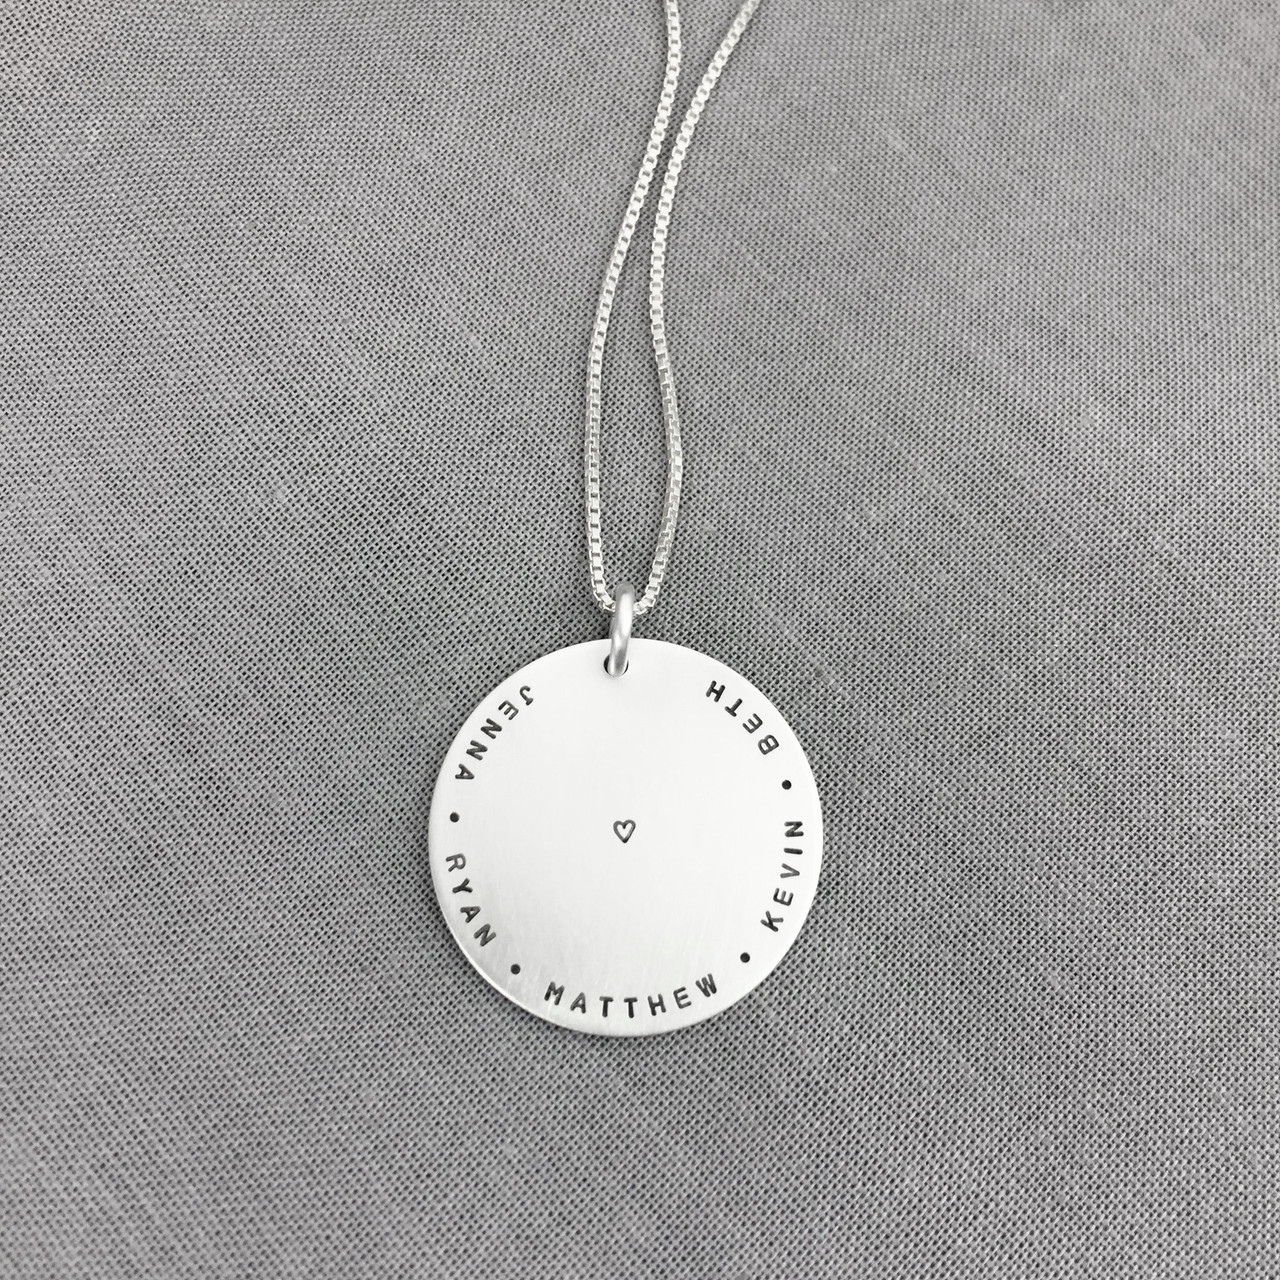 Stamped pendant with family names and heart